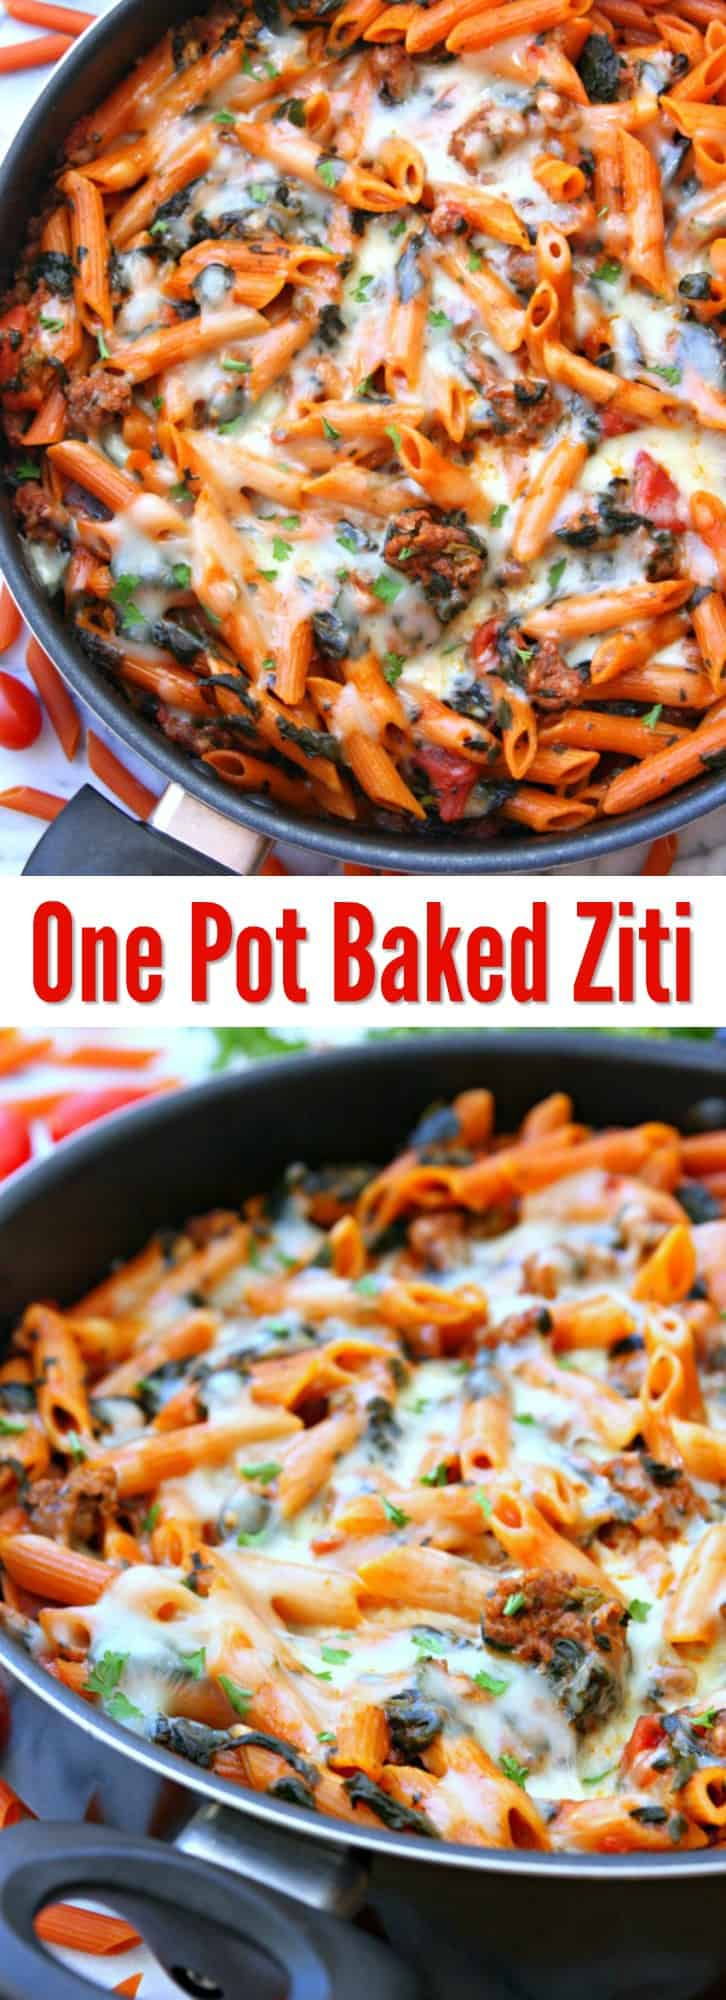 one-pot-baked-ziti-collage